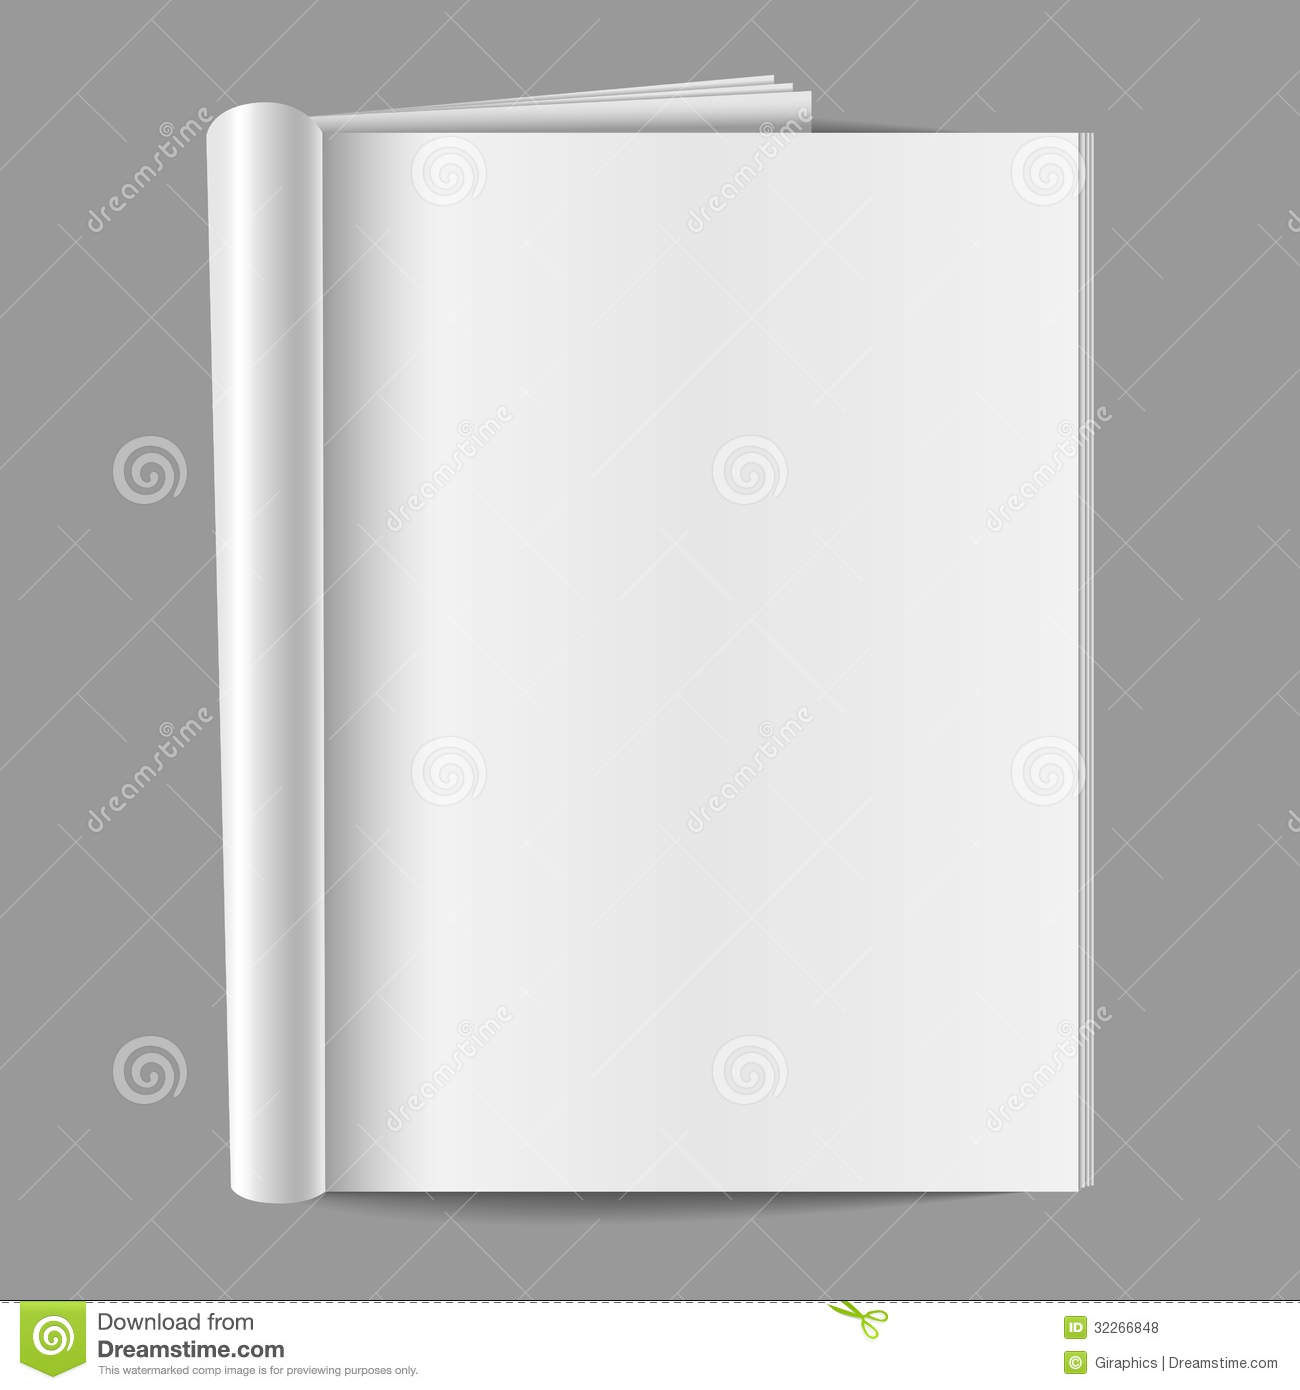 Blank magazine, folded open to show a blank page, isolated on a gray ...